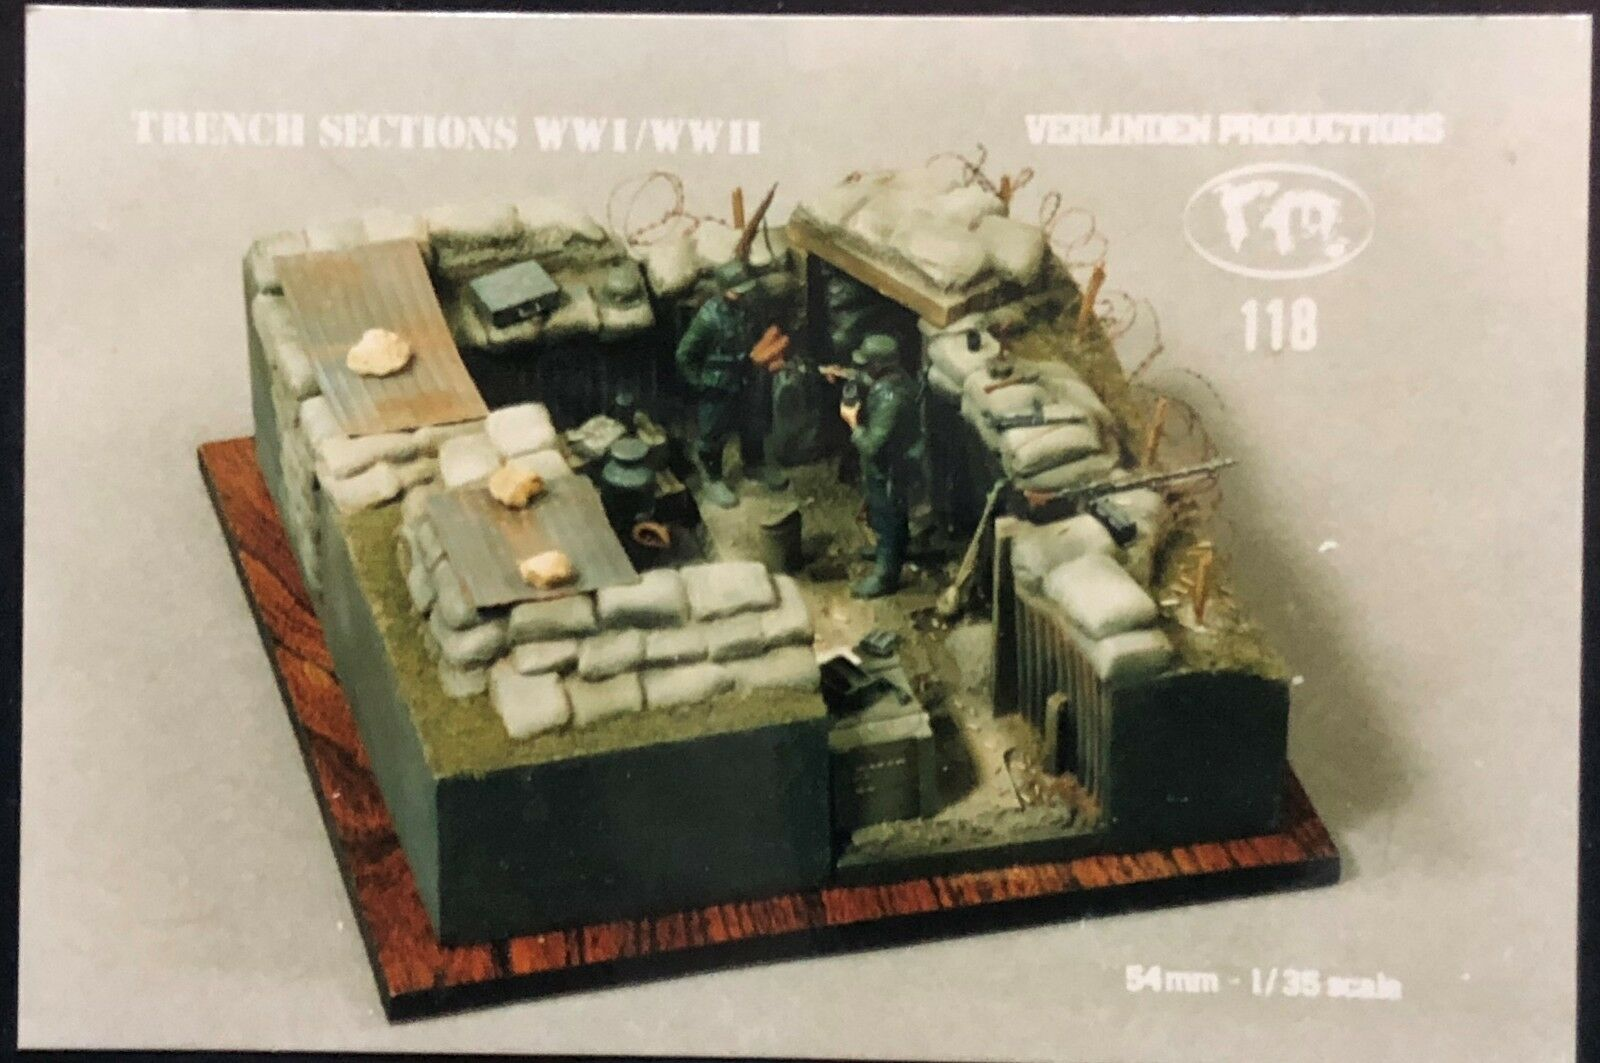 1 35 TRENCH SECTIONS WWI WWII. VERLINDEN 118. NEW